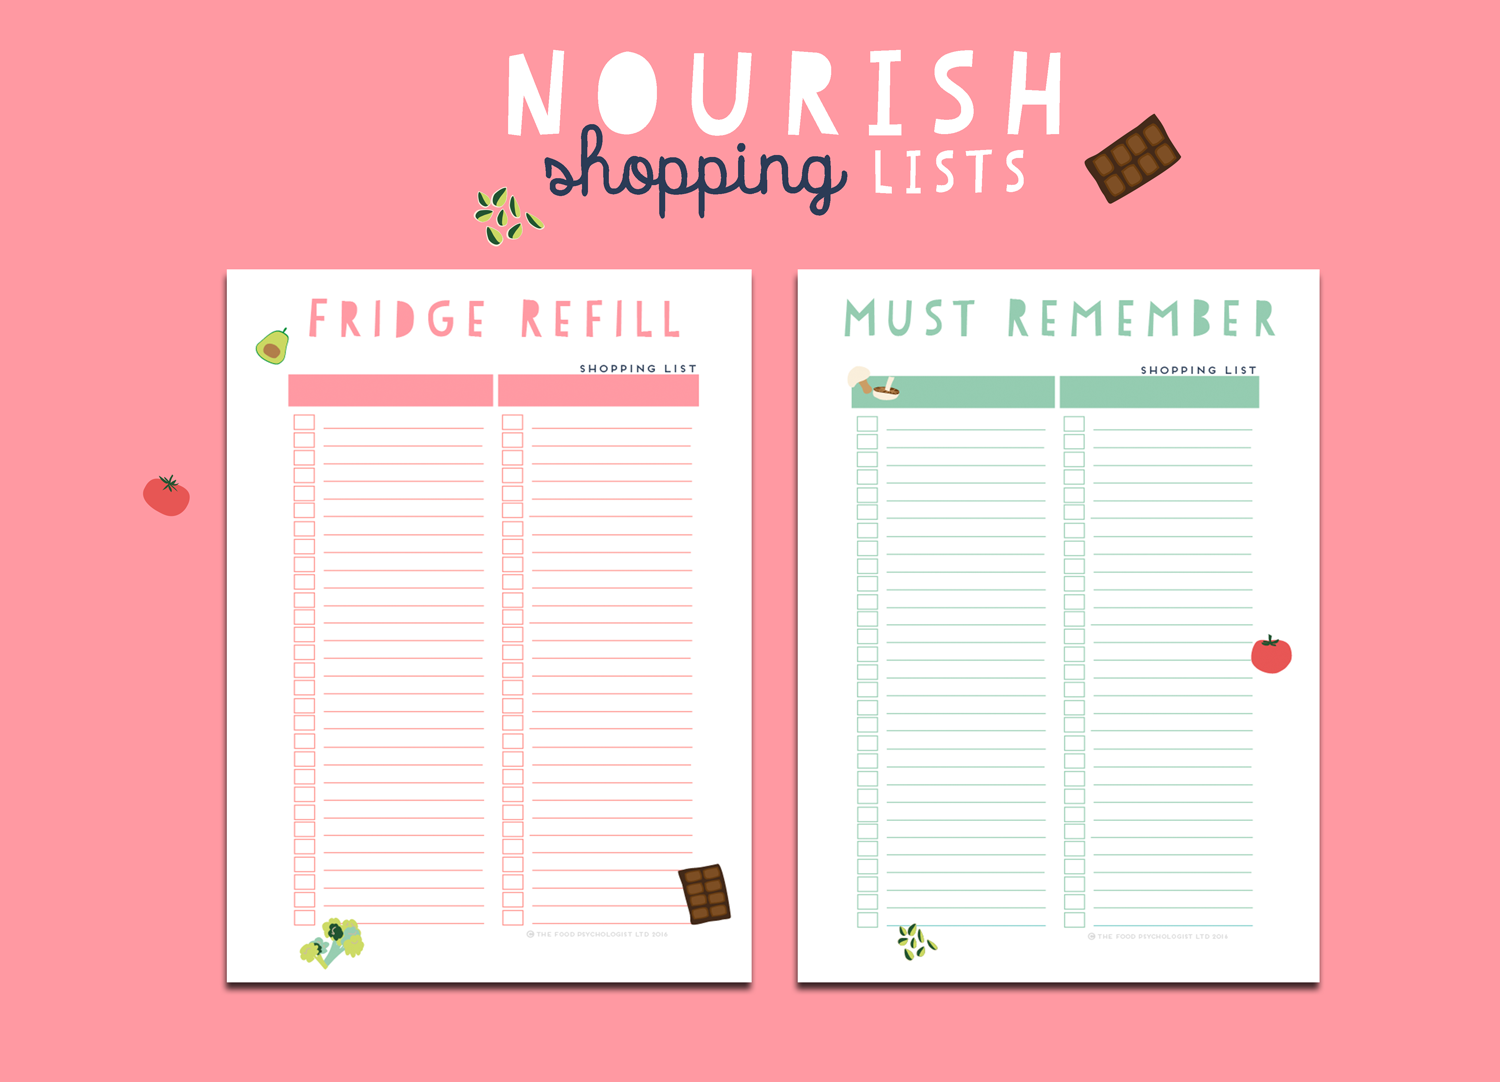 Nourish Shopping Lists